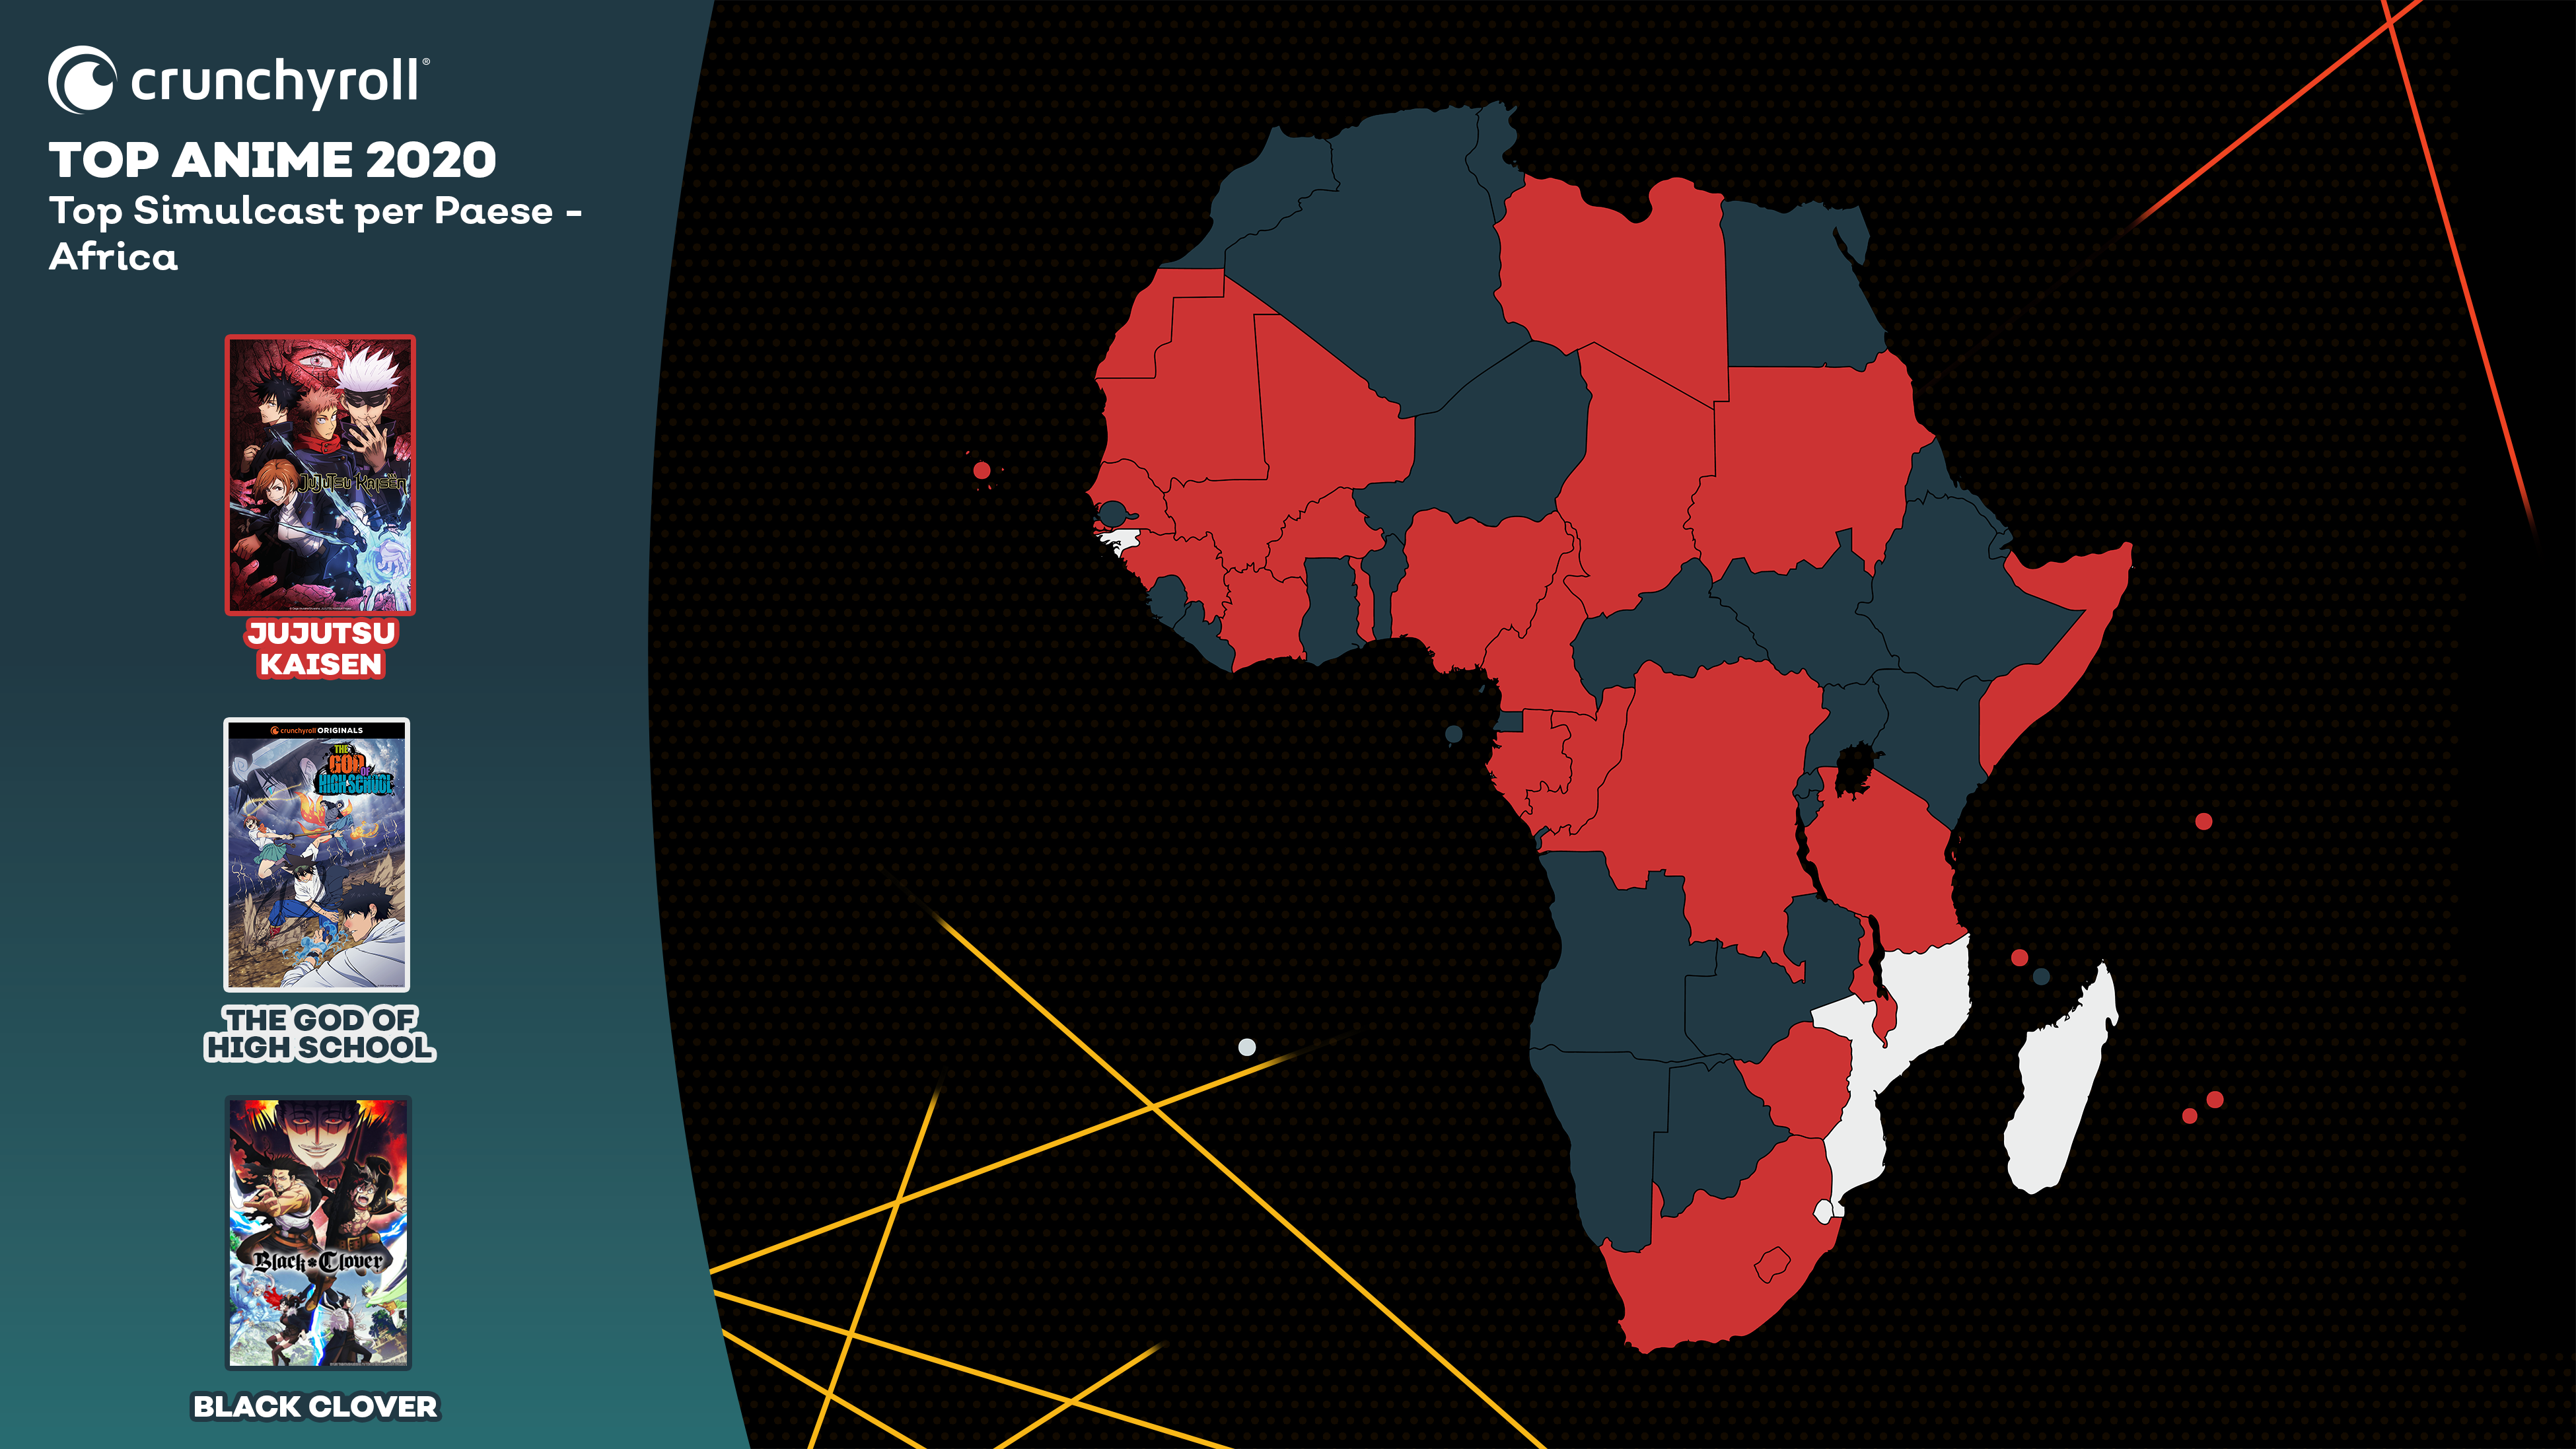 Top Anime of 2020 by Country -- Africa